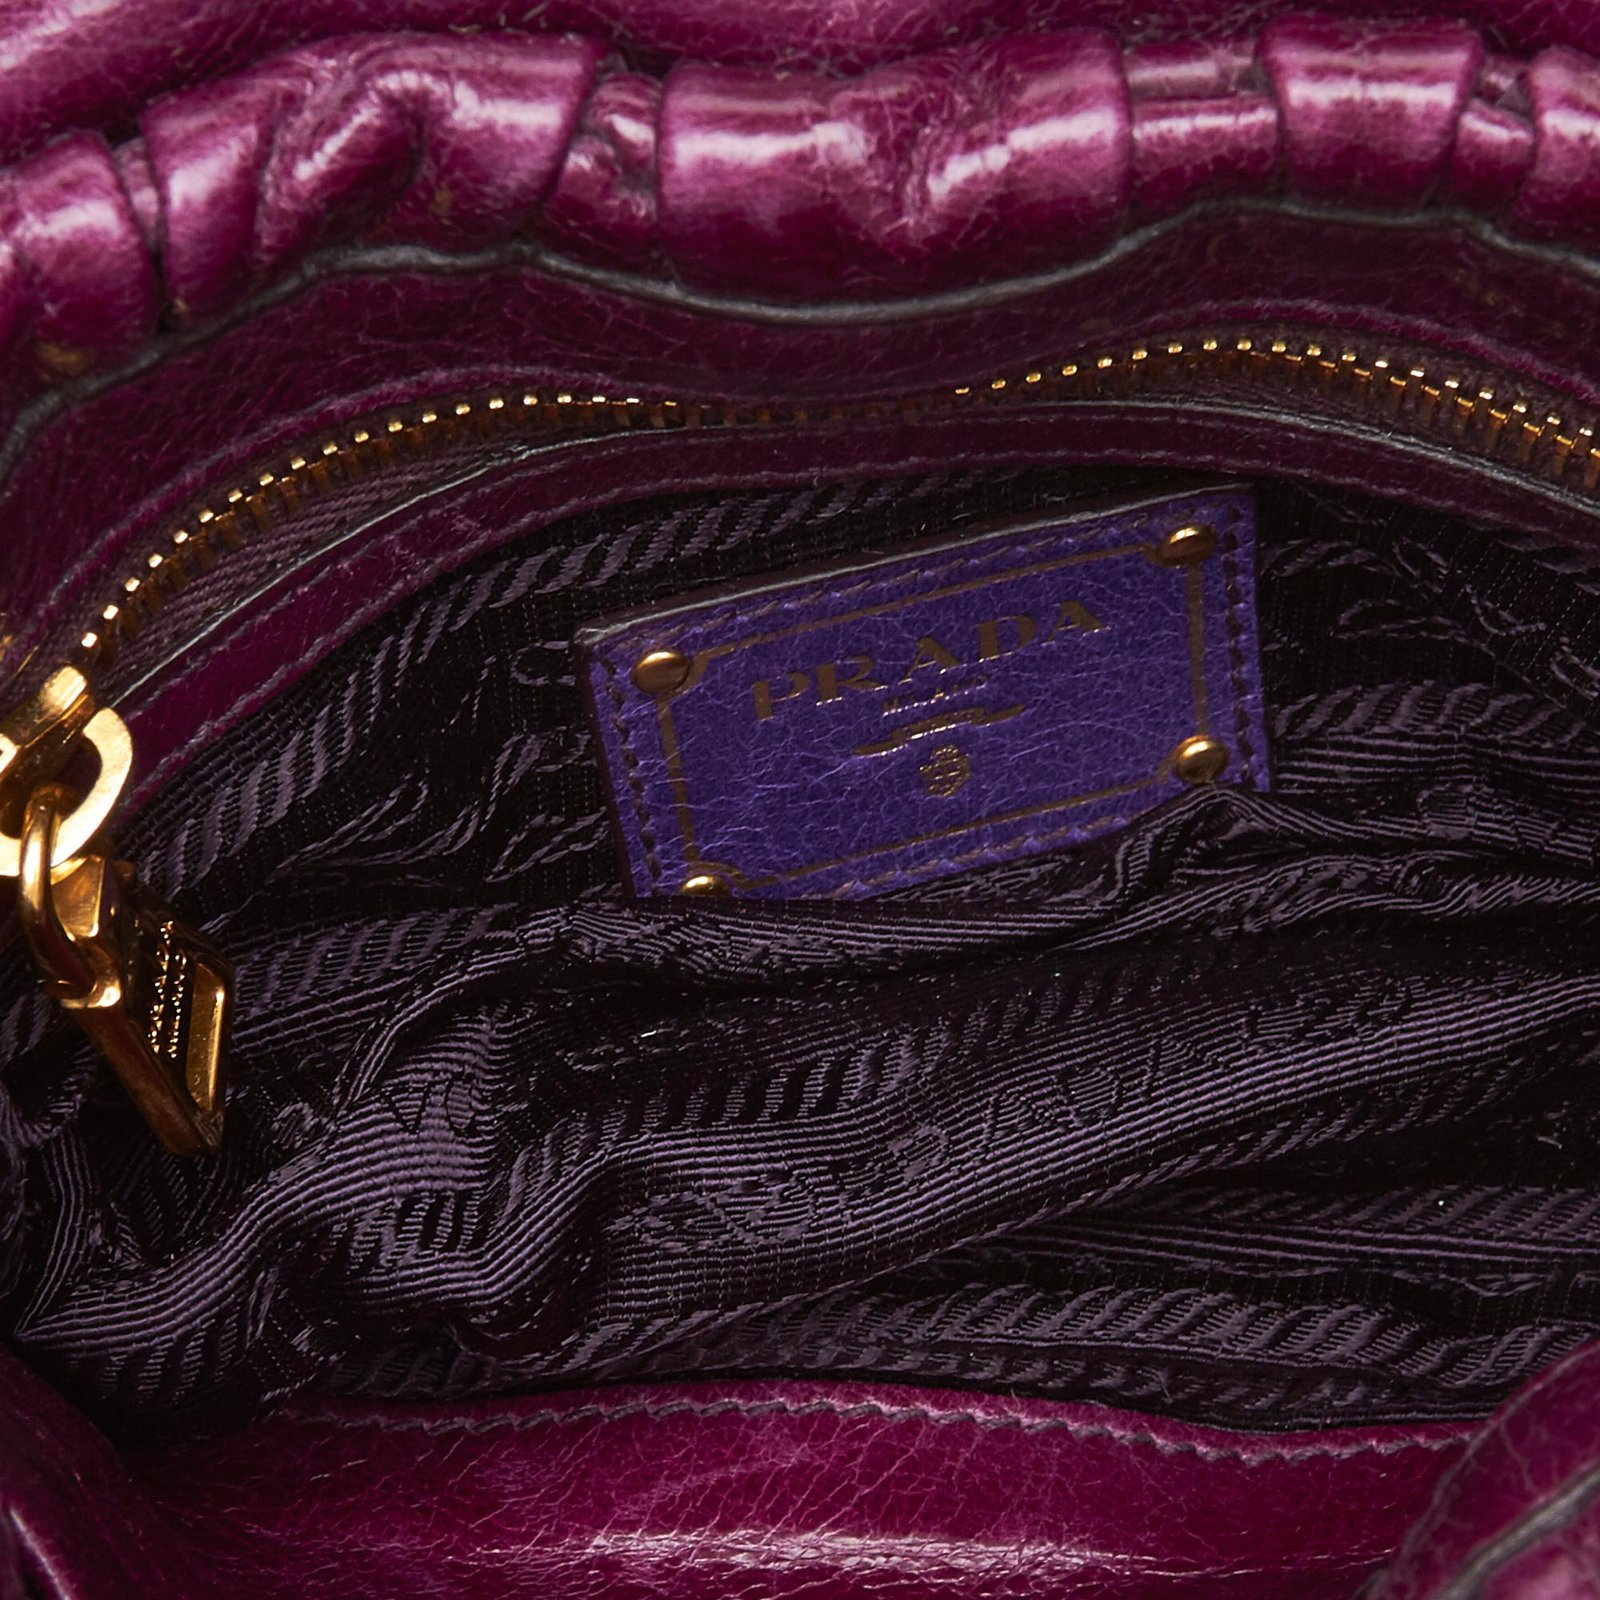 9830713cd1e3 Prada Mini Gathered Leather Chain Crossbody Bag Handbags Leather,Other  Purple ref.101899 - Joli Closet